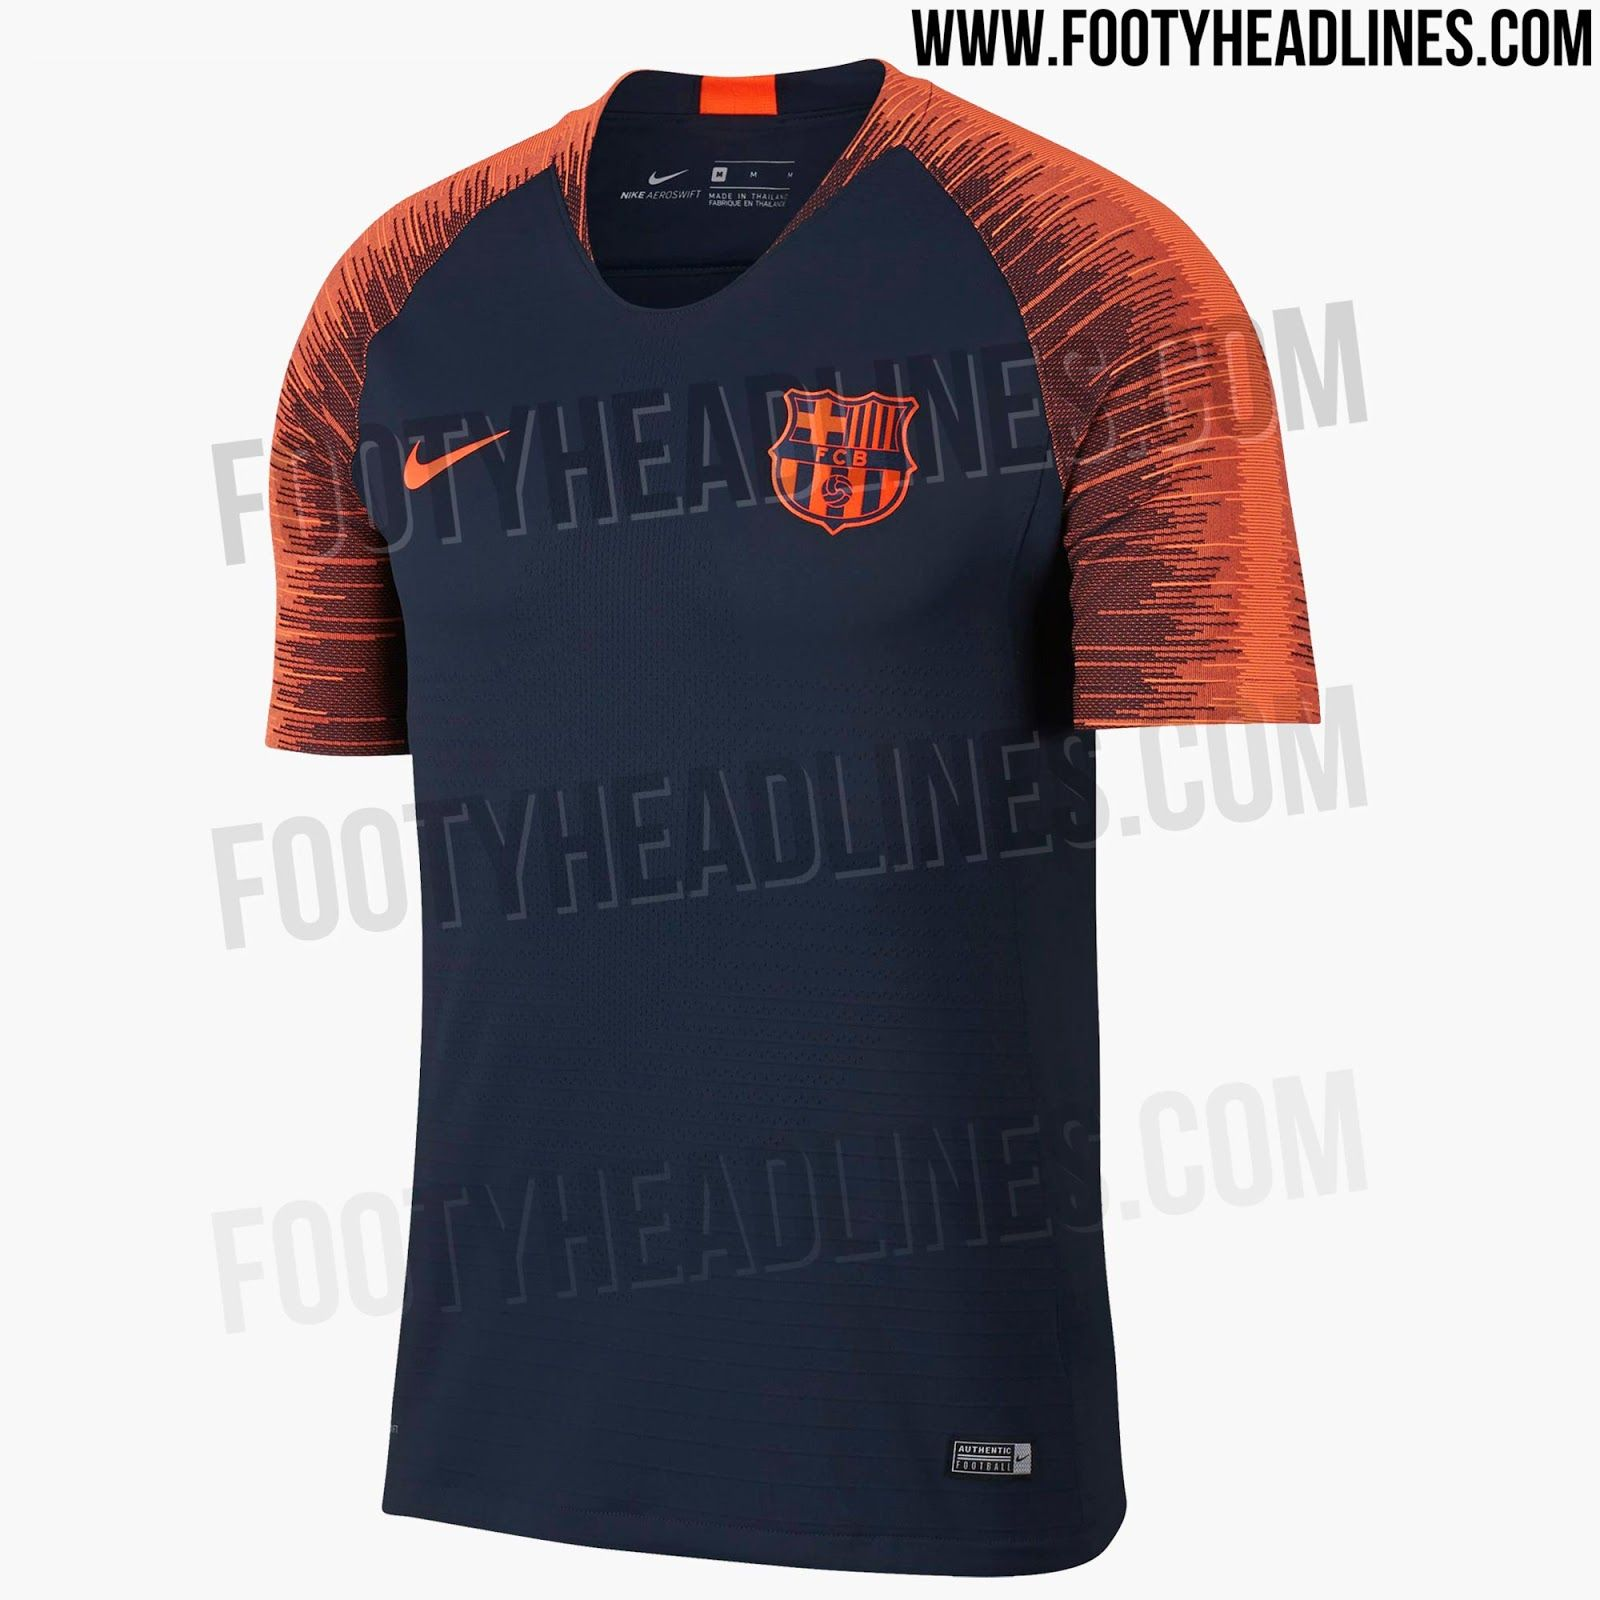 d857cb42963 The Nike Barcelona 2018 training jersey allows a first look at one of Nike's  2018 World Cup templates.